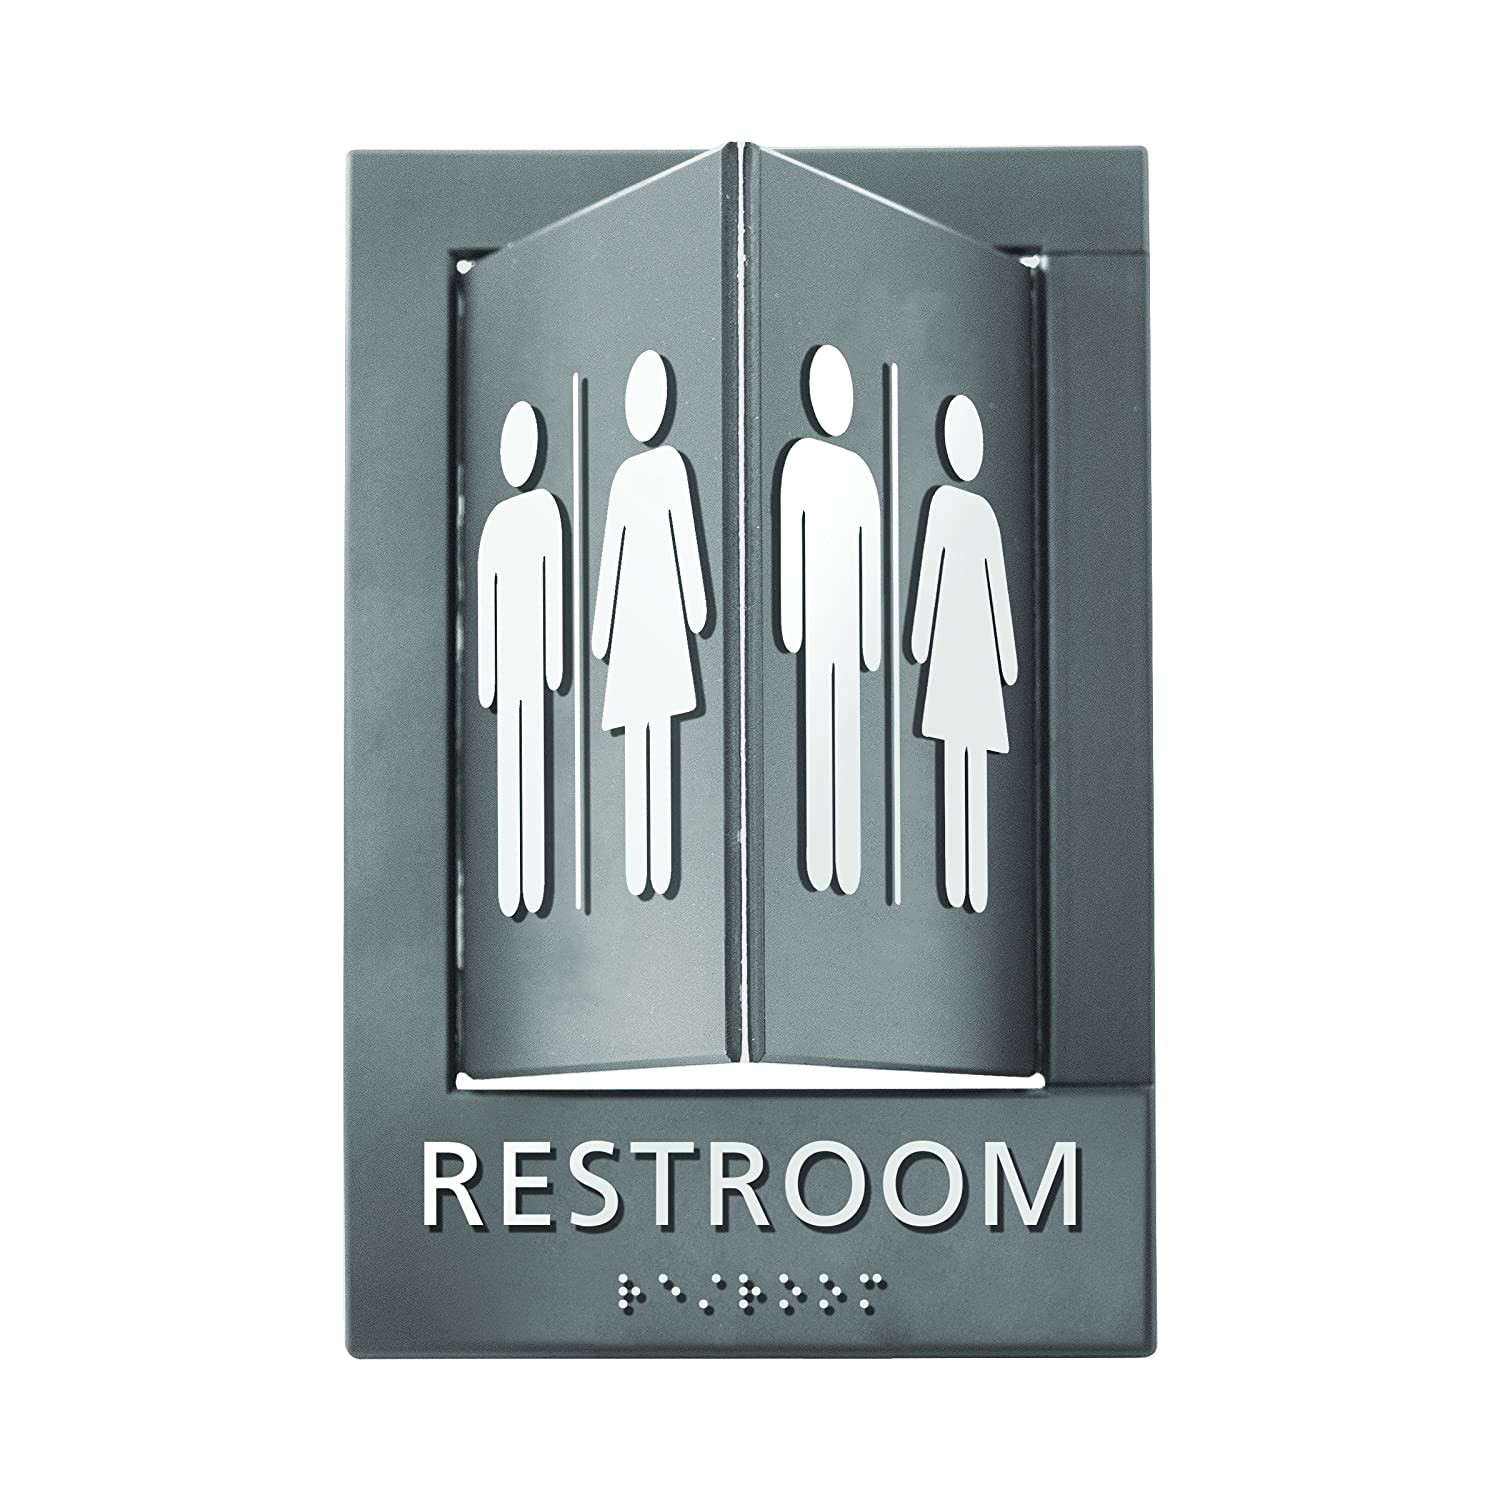 Advantus Pop-Out ADA Signs, 6 x 9 Inches, Gray/White, Restroom (91098)